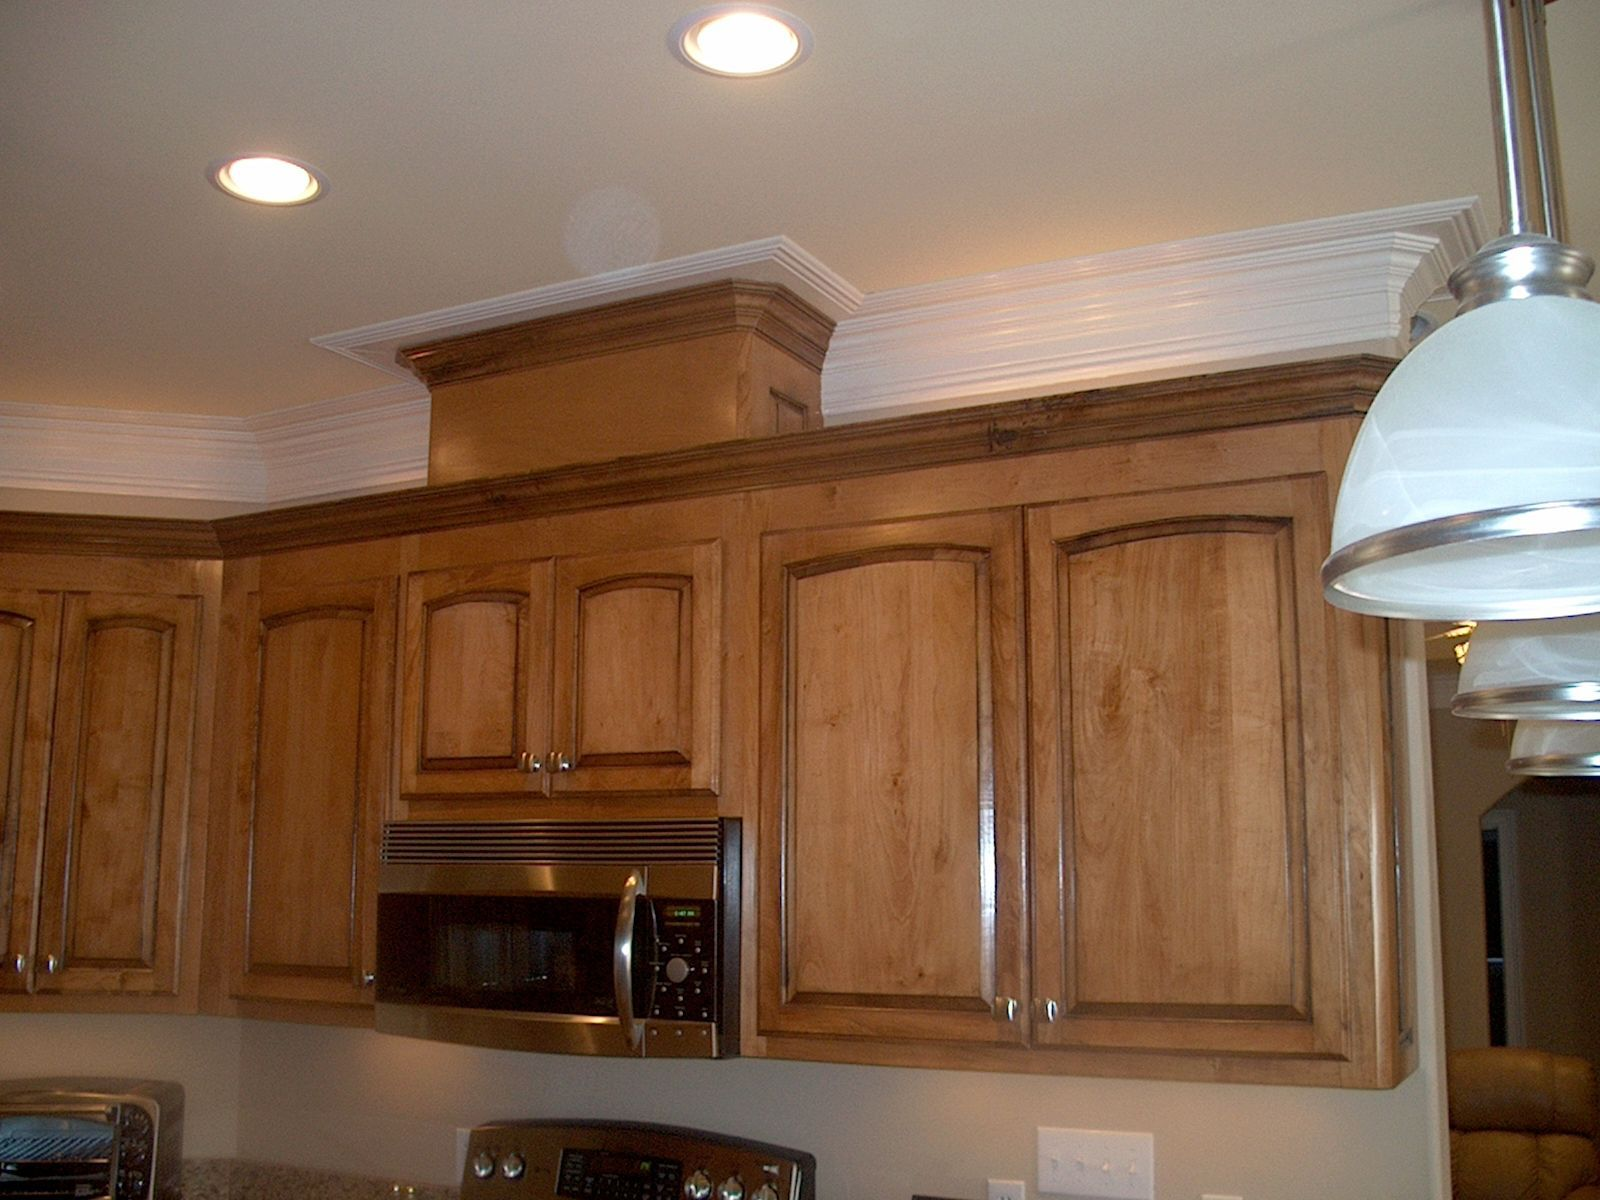 Kitchen Uppers With Vent Cover Jpg